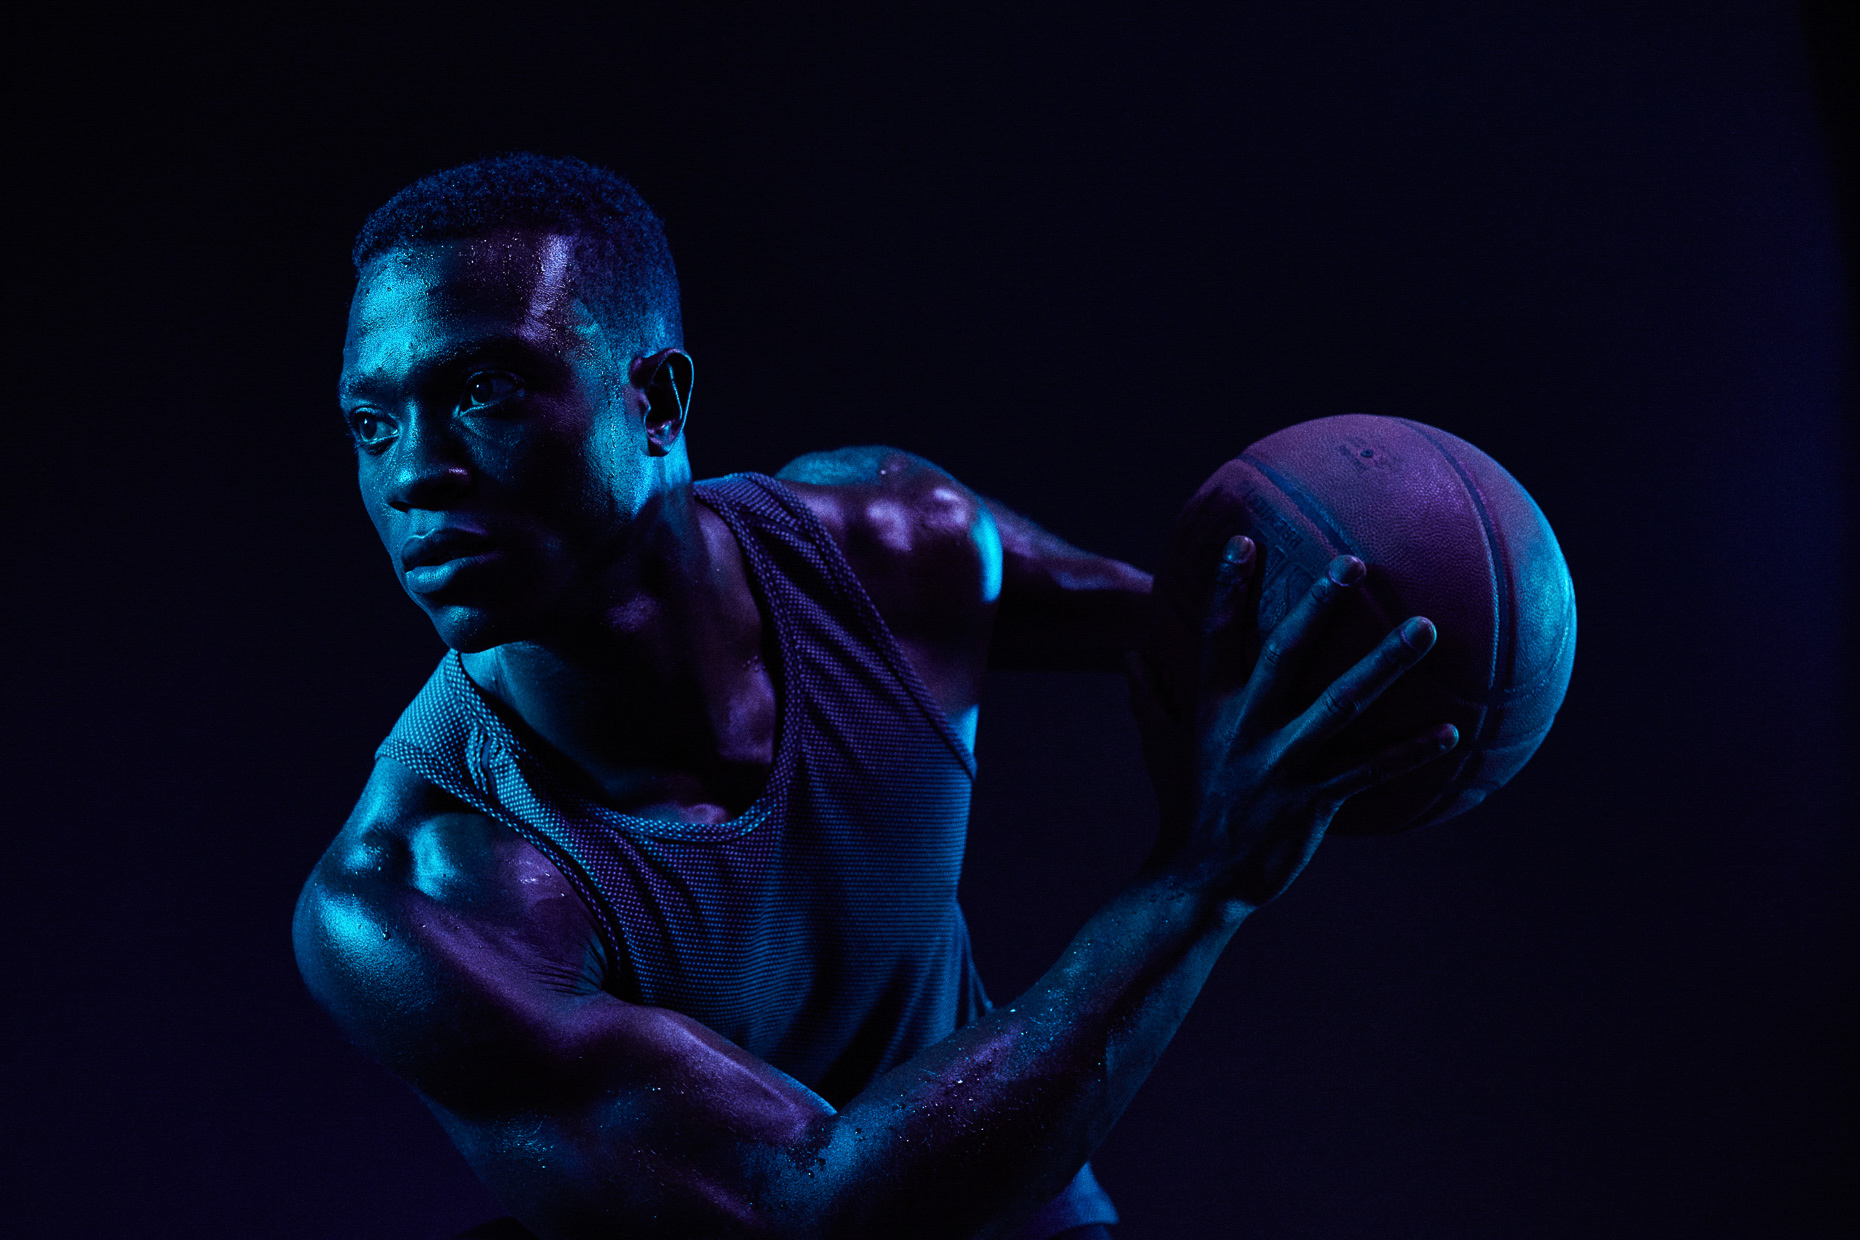 Nike basketball athlete David Kojo Aidoo by Andy Batt. The player holds the ball defensively in this dark scene lit with blue gels.